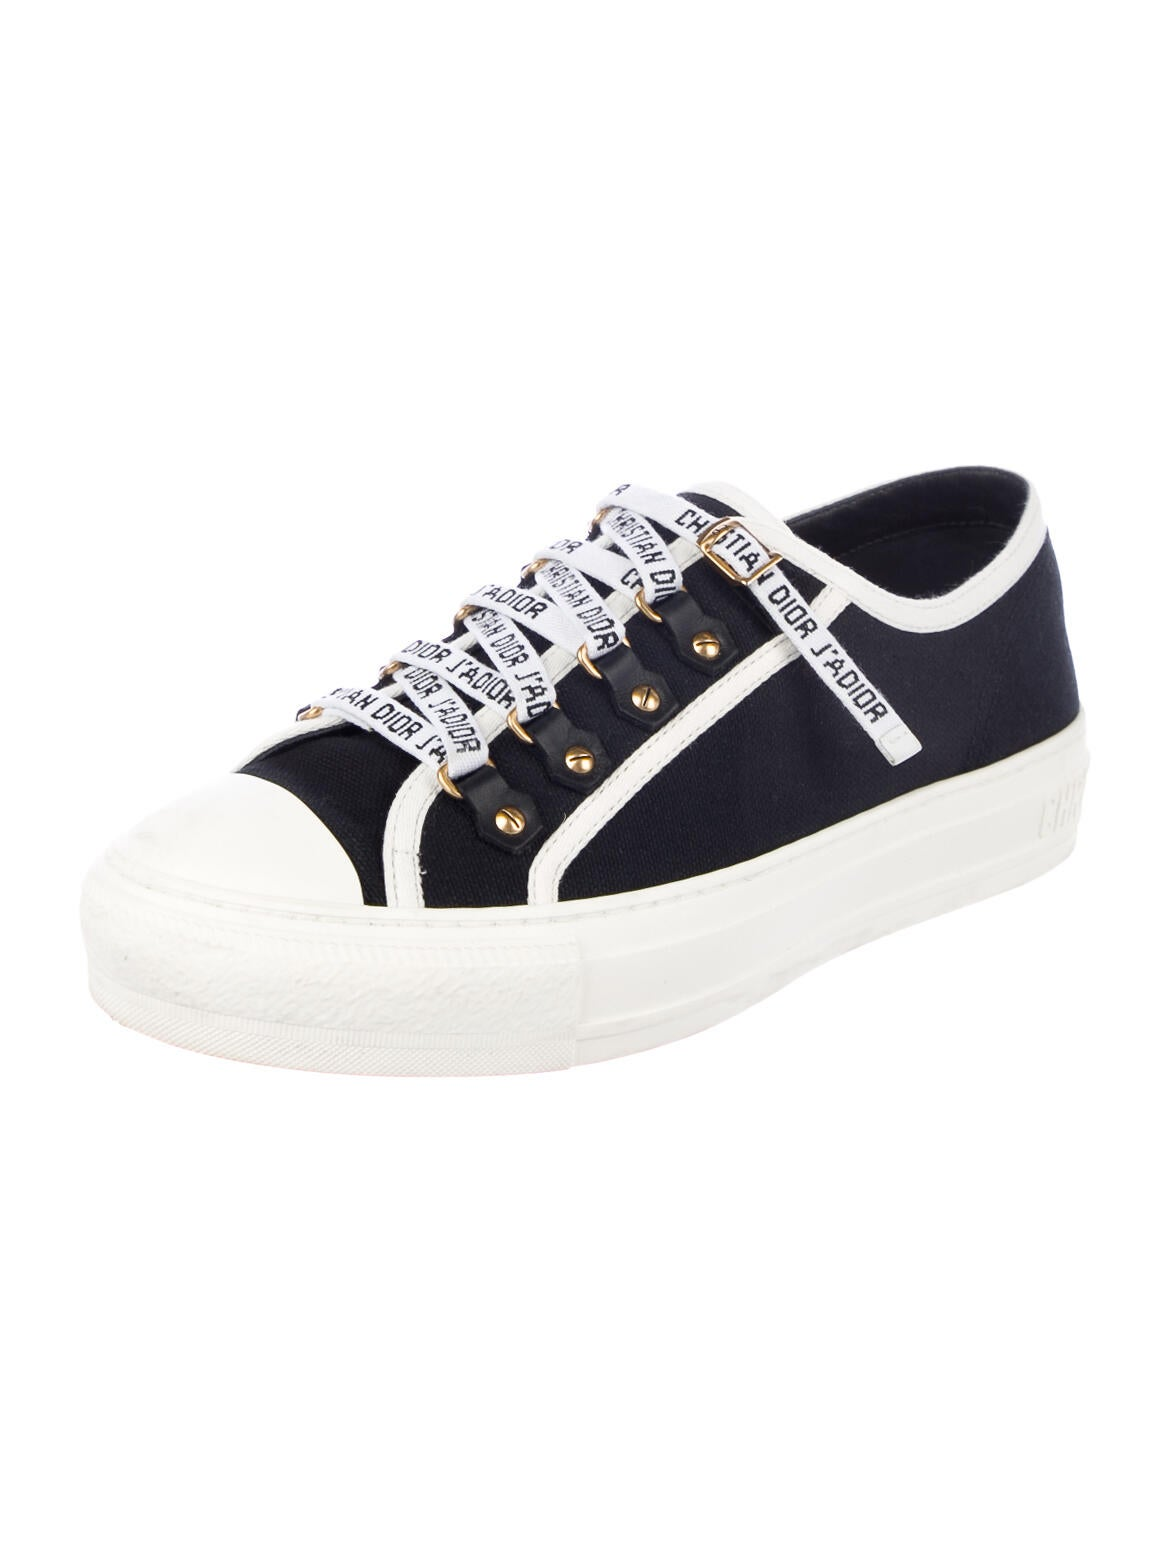 Dior Tennis Shoes Online